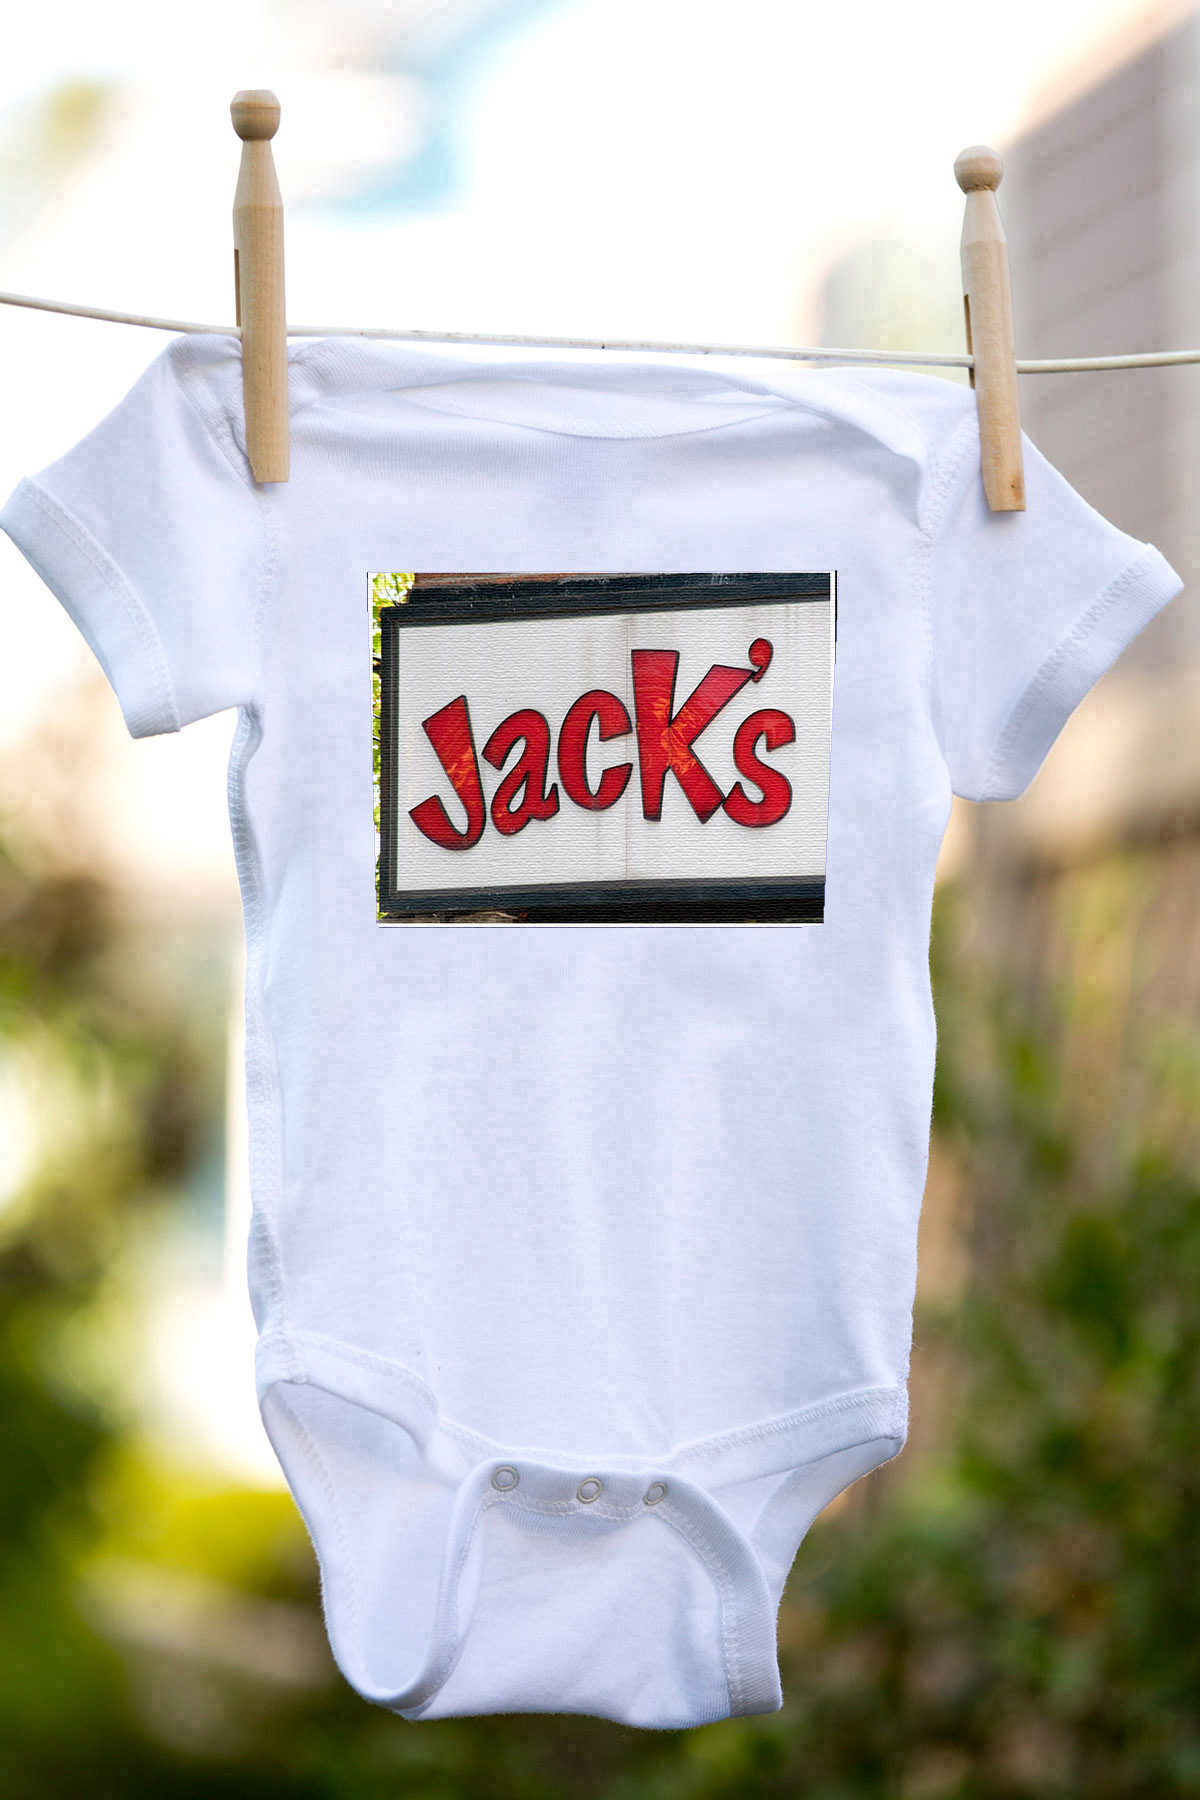 https://www.etsy.com/listing/237689151/personalized-baby-bodysuit-featuring-the?ref=shop_home_active_1&ga_search_query=JACK